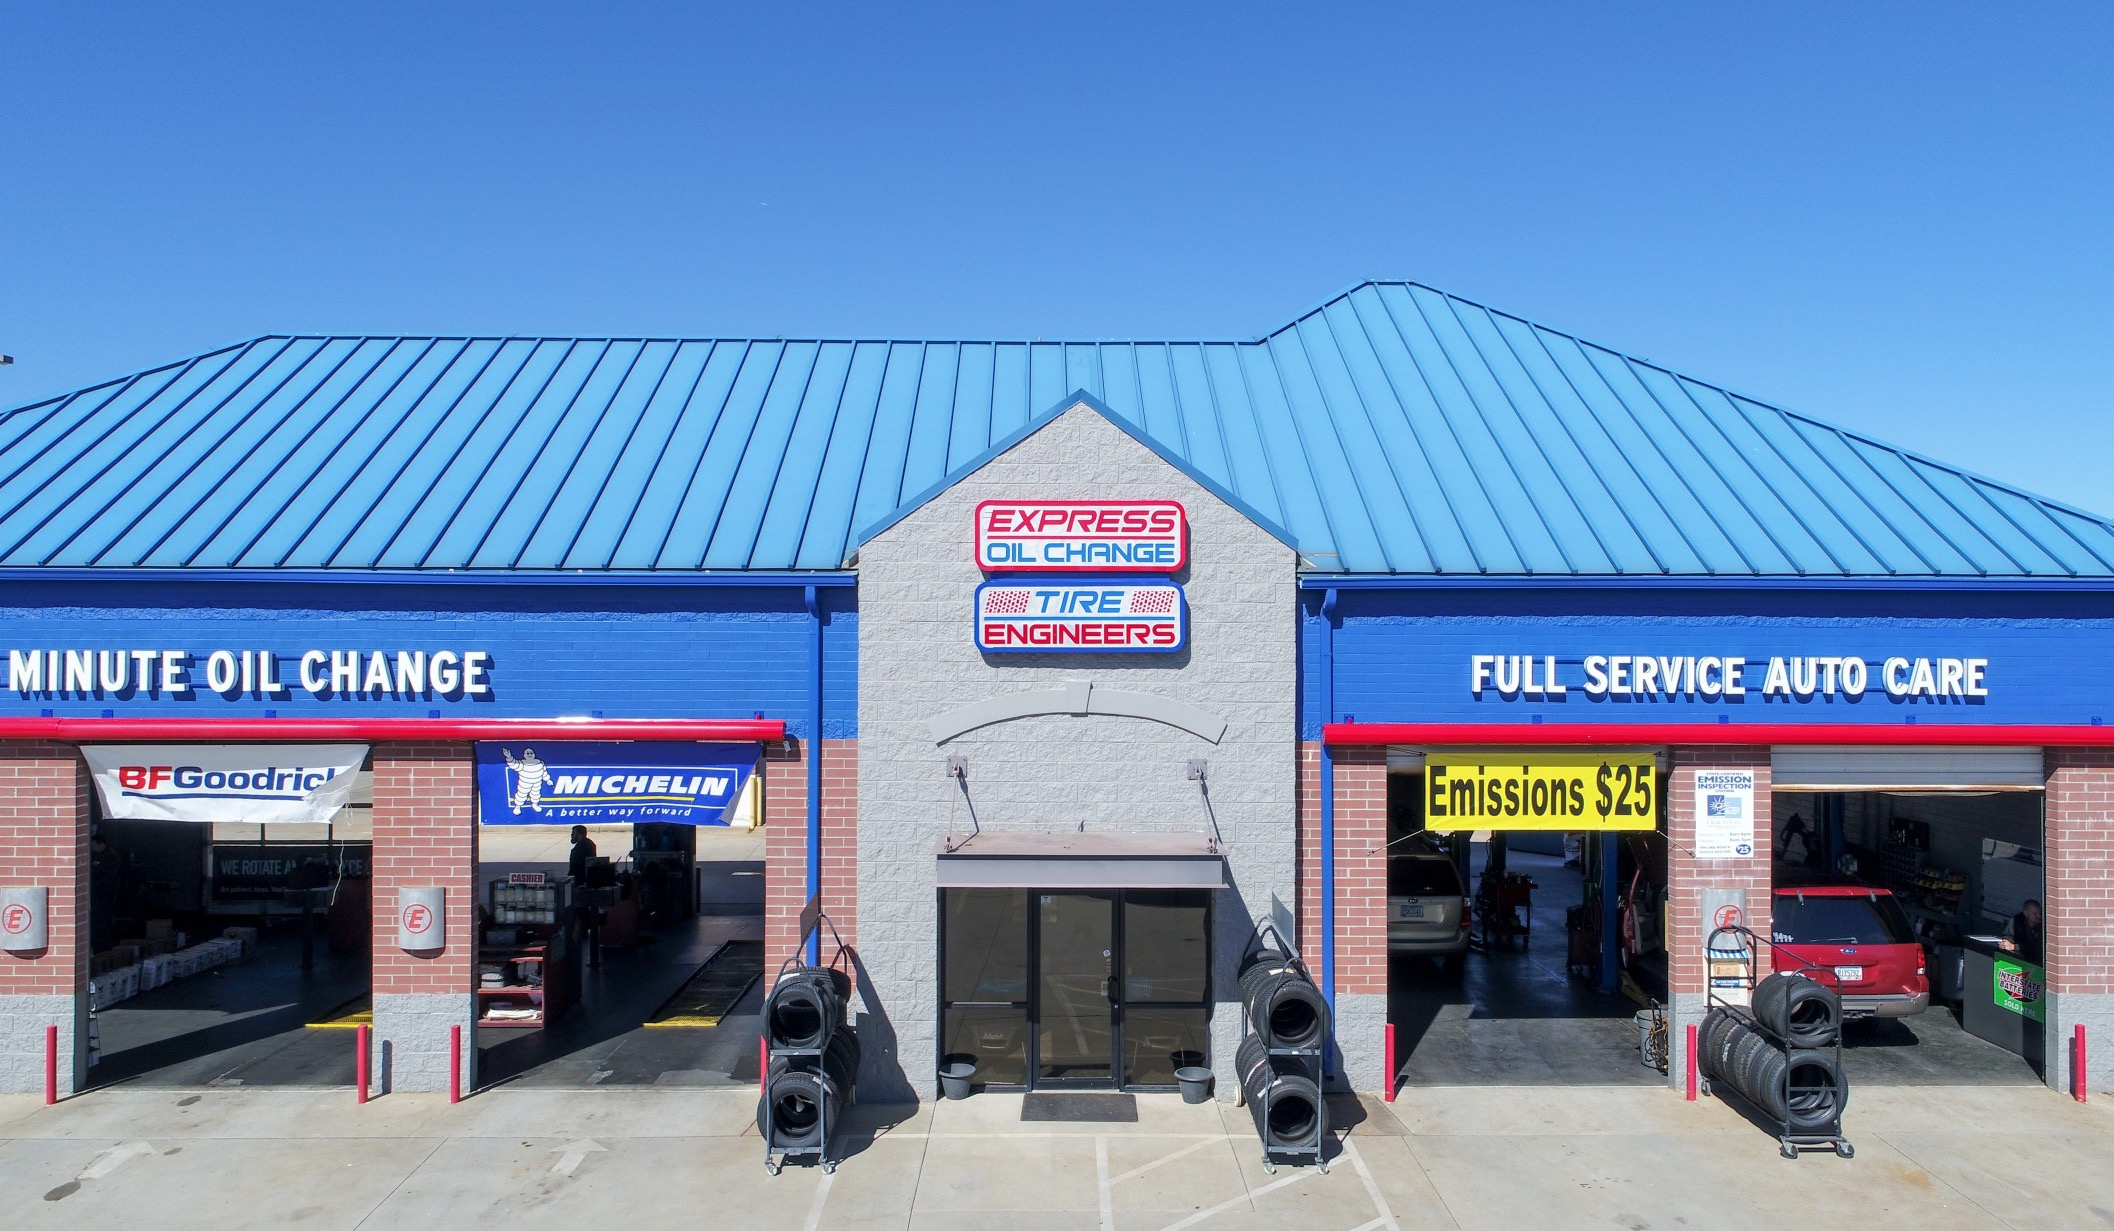 Oil Change Tires Auto Repair Mcdonough 30253 Express Michelin Fuel Filters Services In Ga